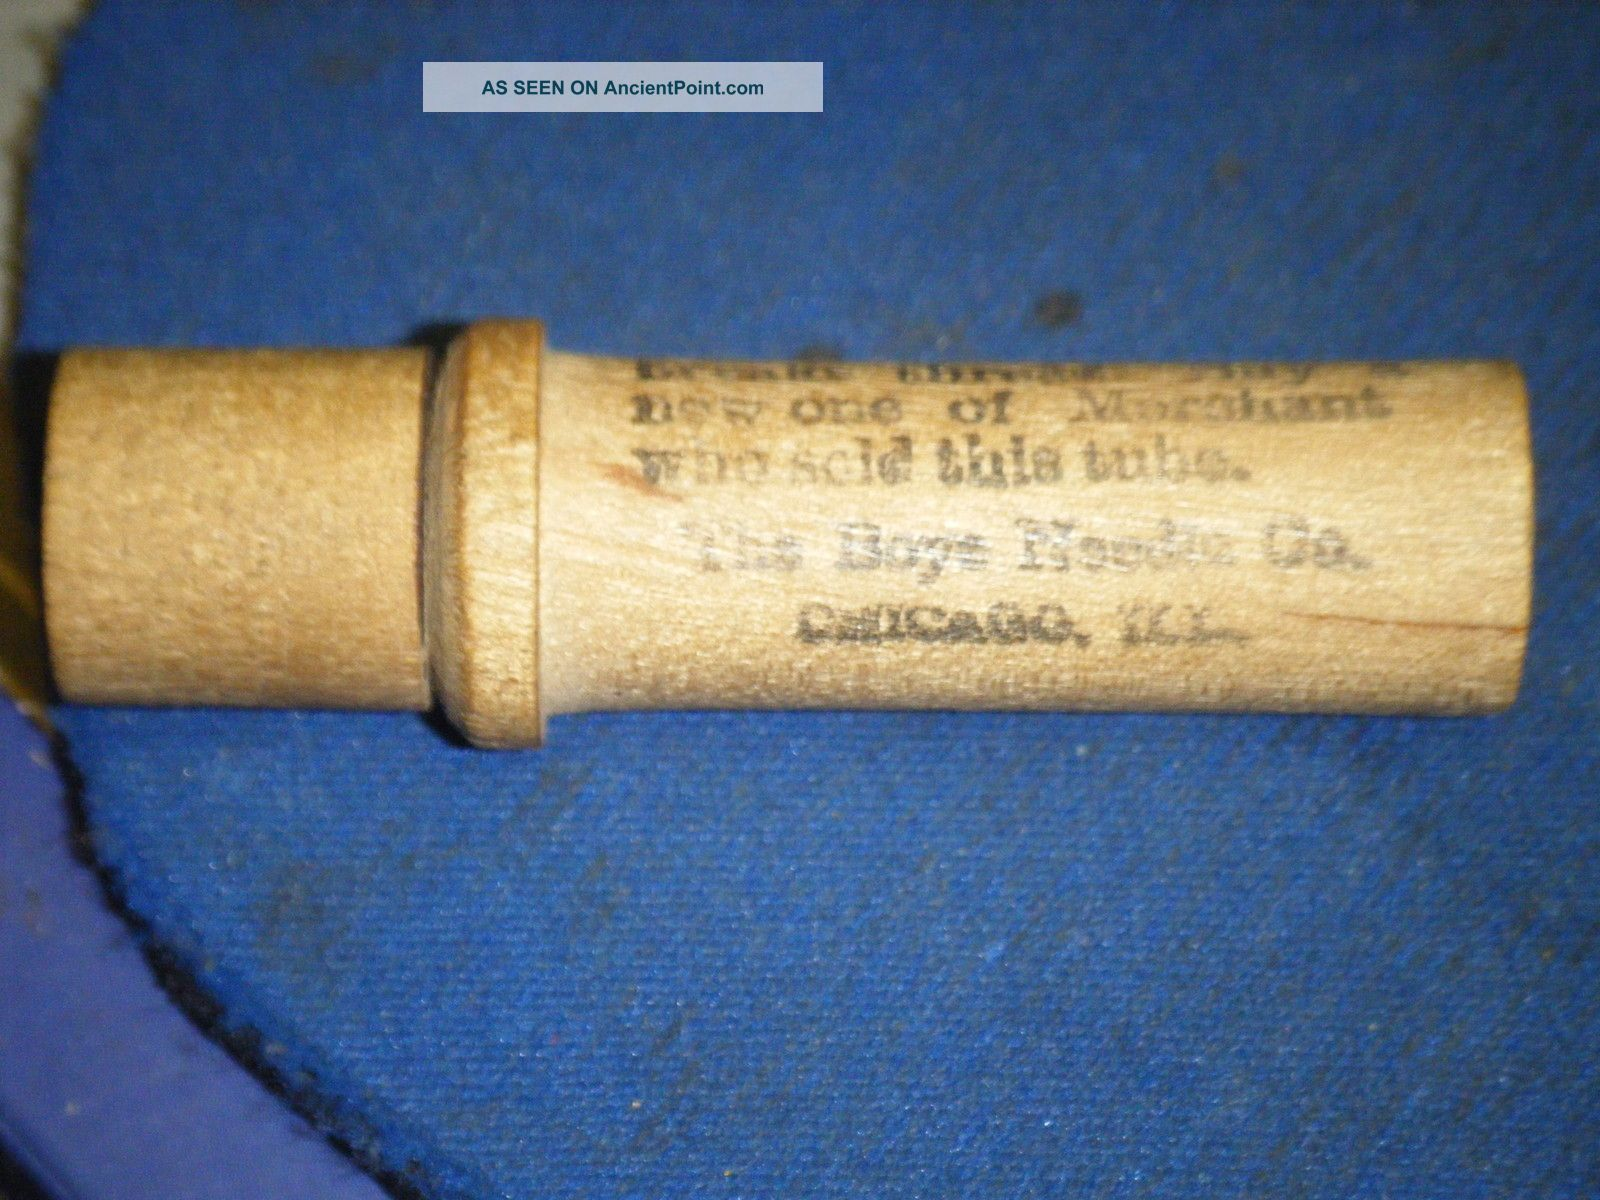 Antique Wood Sewing Needle Case The Boys Needle Co.  Chicago 1910 / 30 Needles Needles & Cases photo